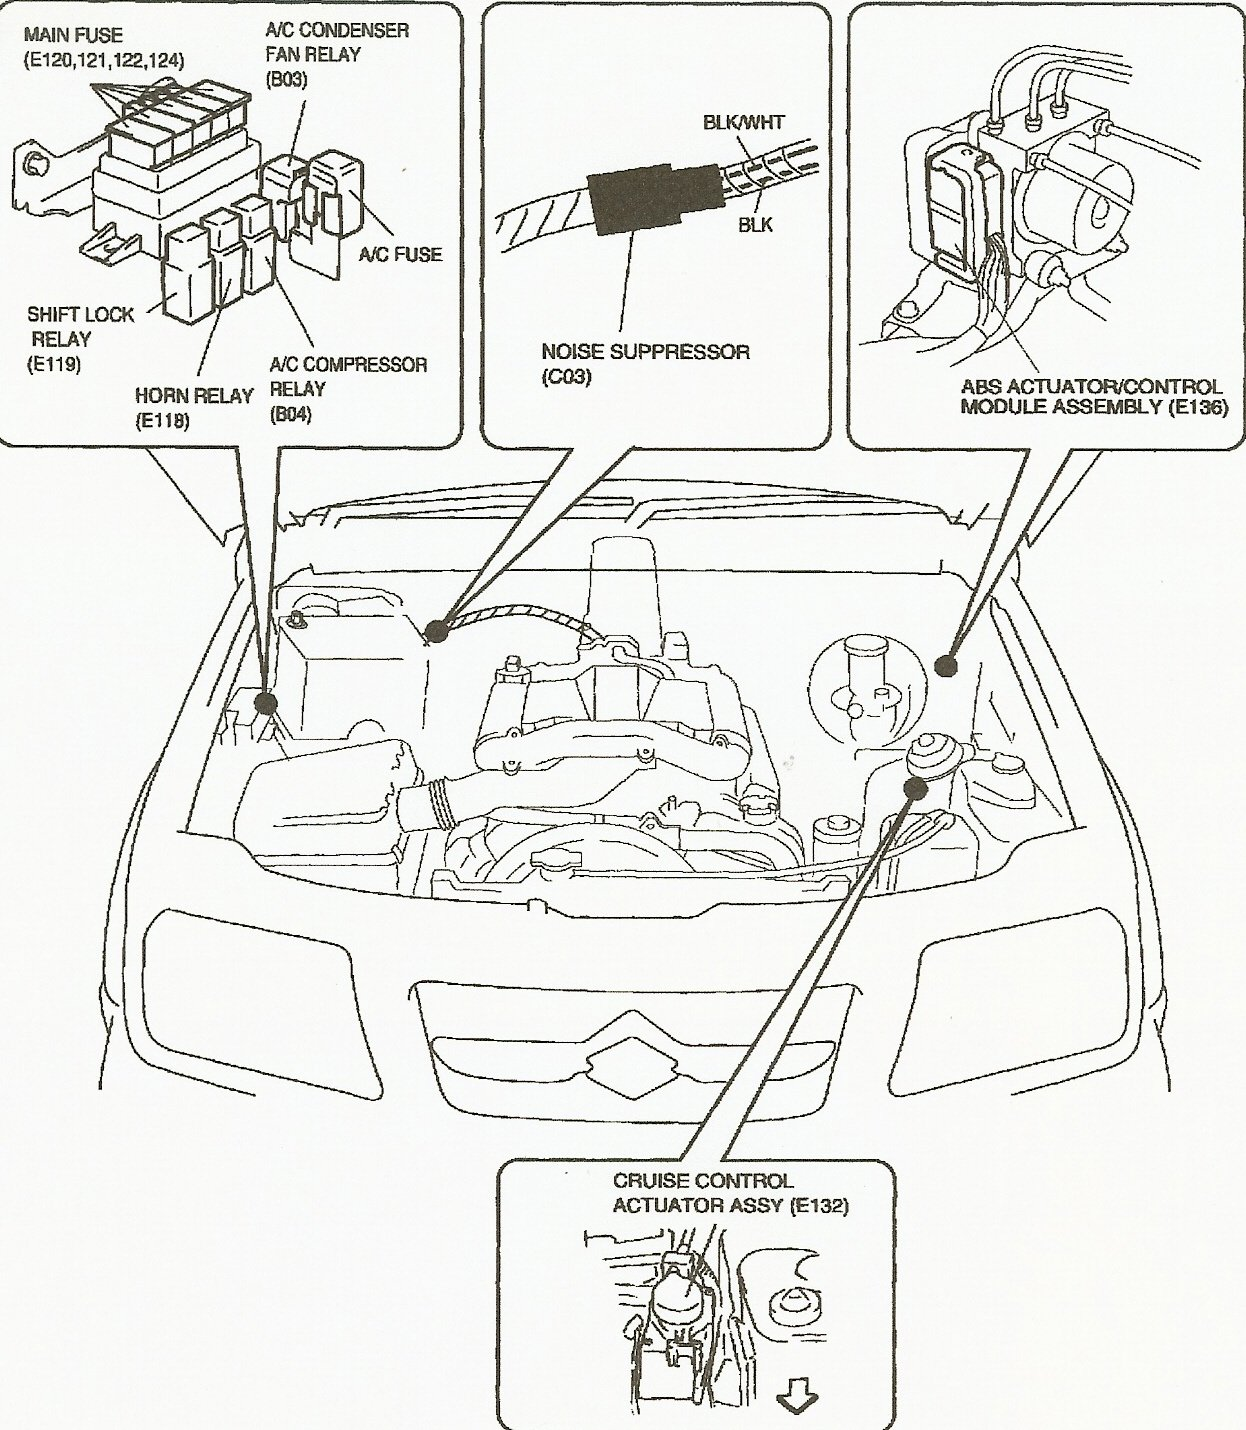 2011 06 08_154052_relay_locations 2000 suzuki grand vitara fuse box location wiring diagram 2000 suzuki grand vitara fuse box diagram at metegol.co